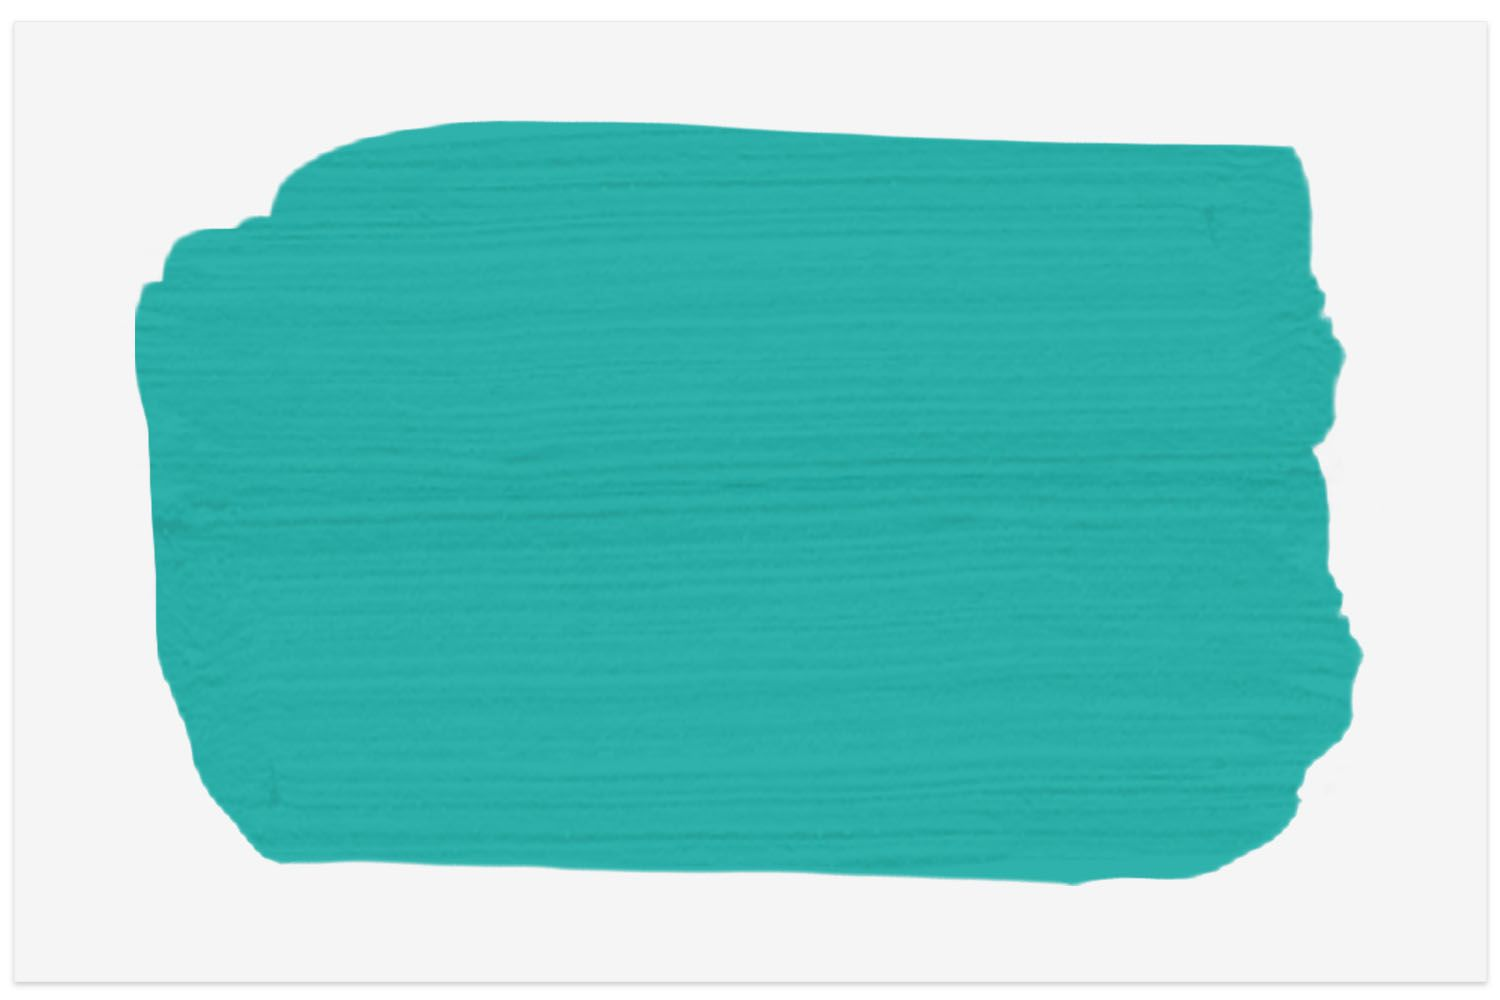 Turquoise Tint paint swatch